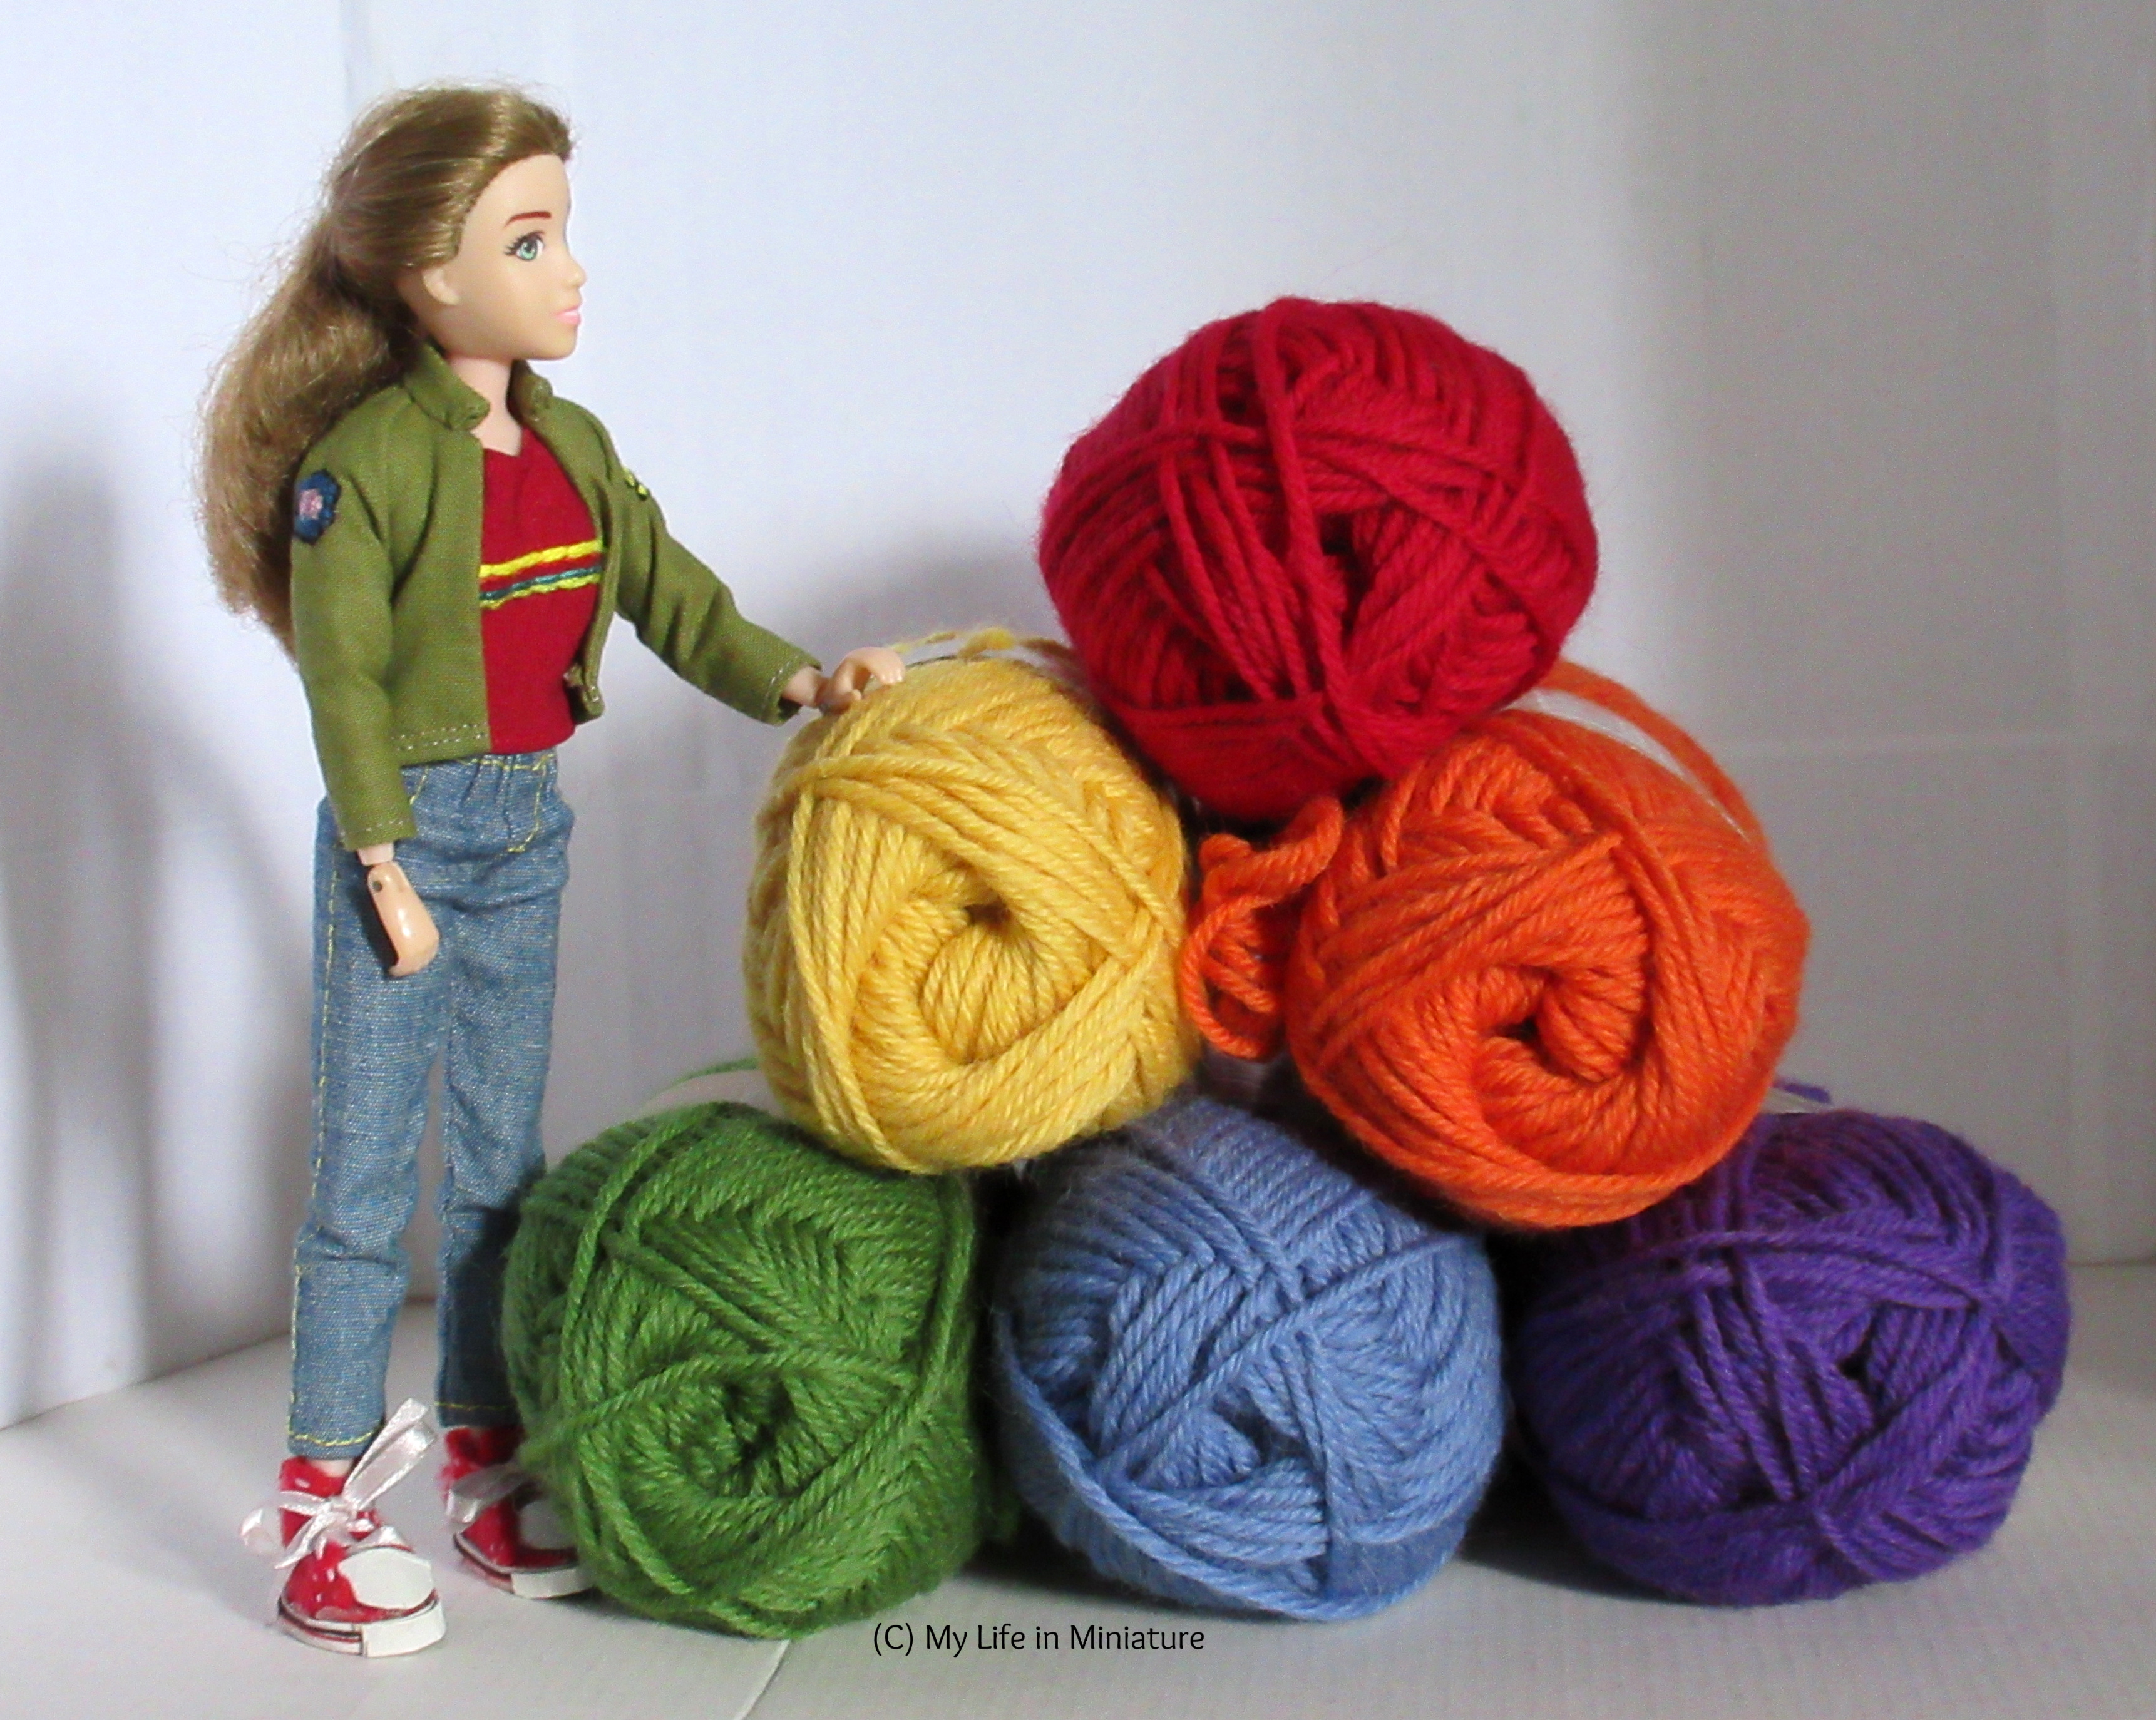 Sarah stands next to a pyramid of stacked balls of yarn. The yarn is in rainbow order from top to bottom. She rests her hand on the closest ball and looks at the top yarn ball.